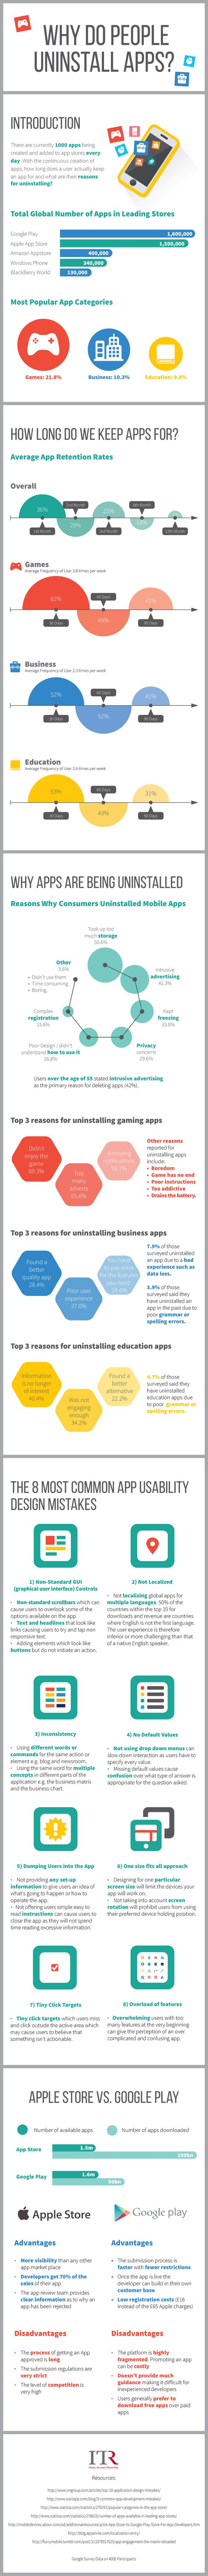 why users uninstall app infographic.jpg